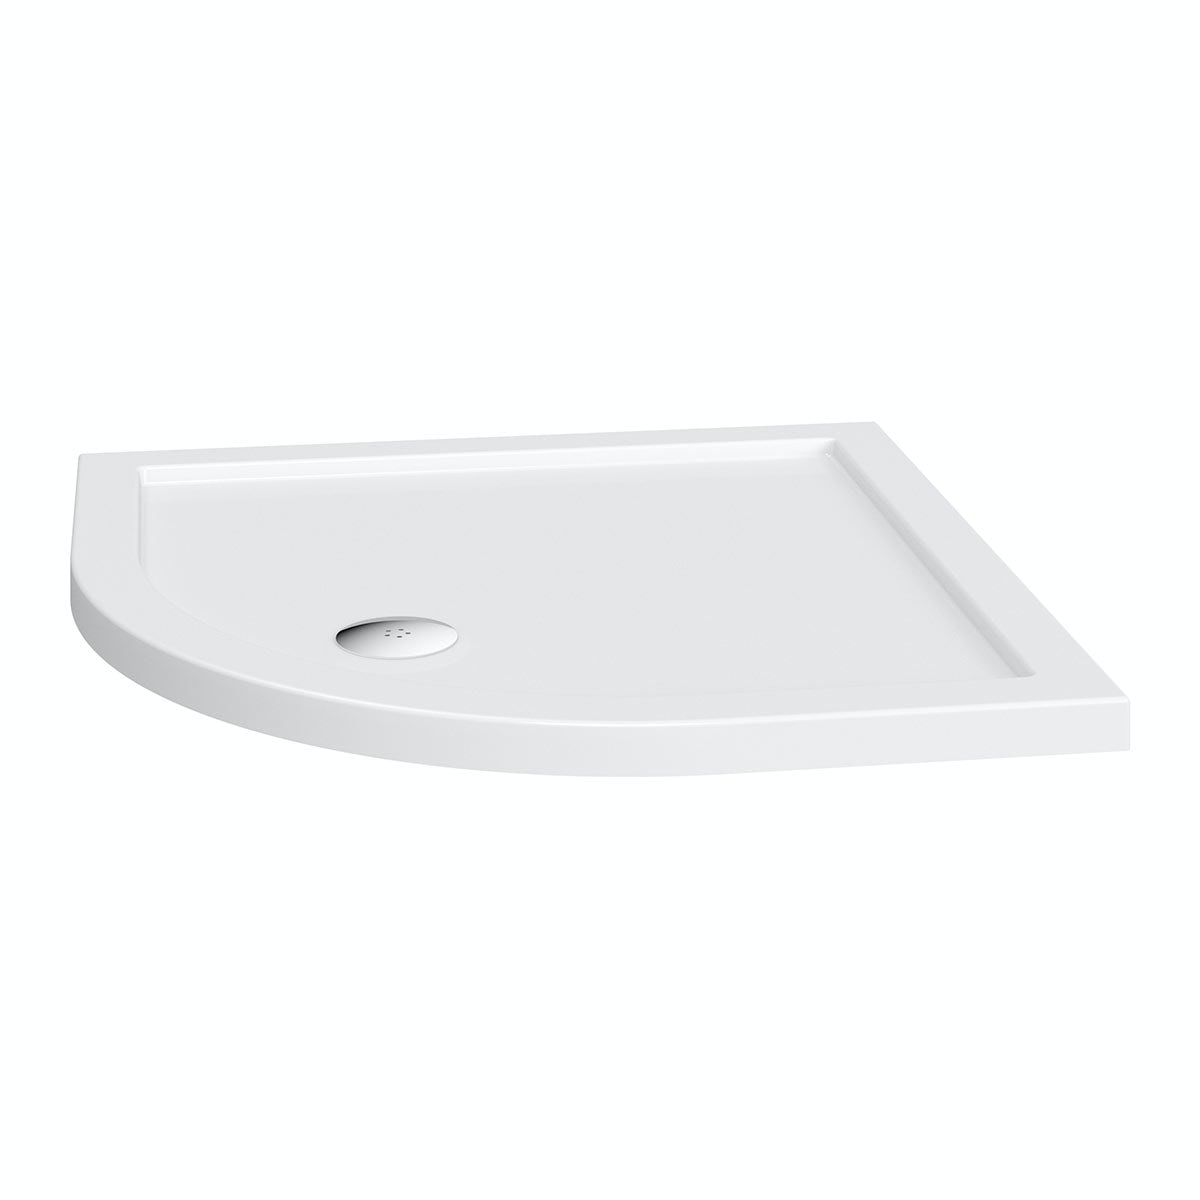 Quadrant Stone Shower Tray